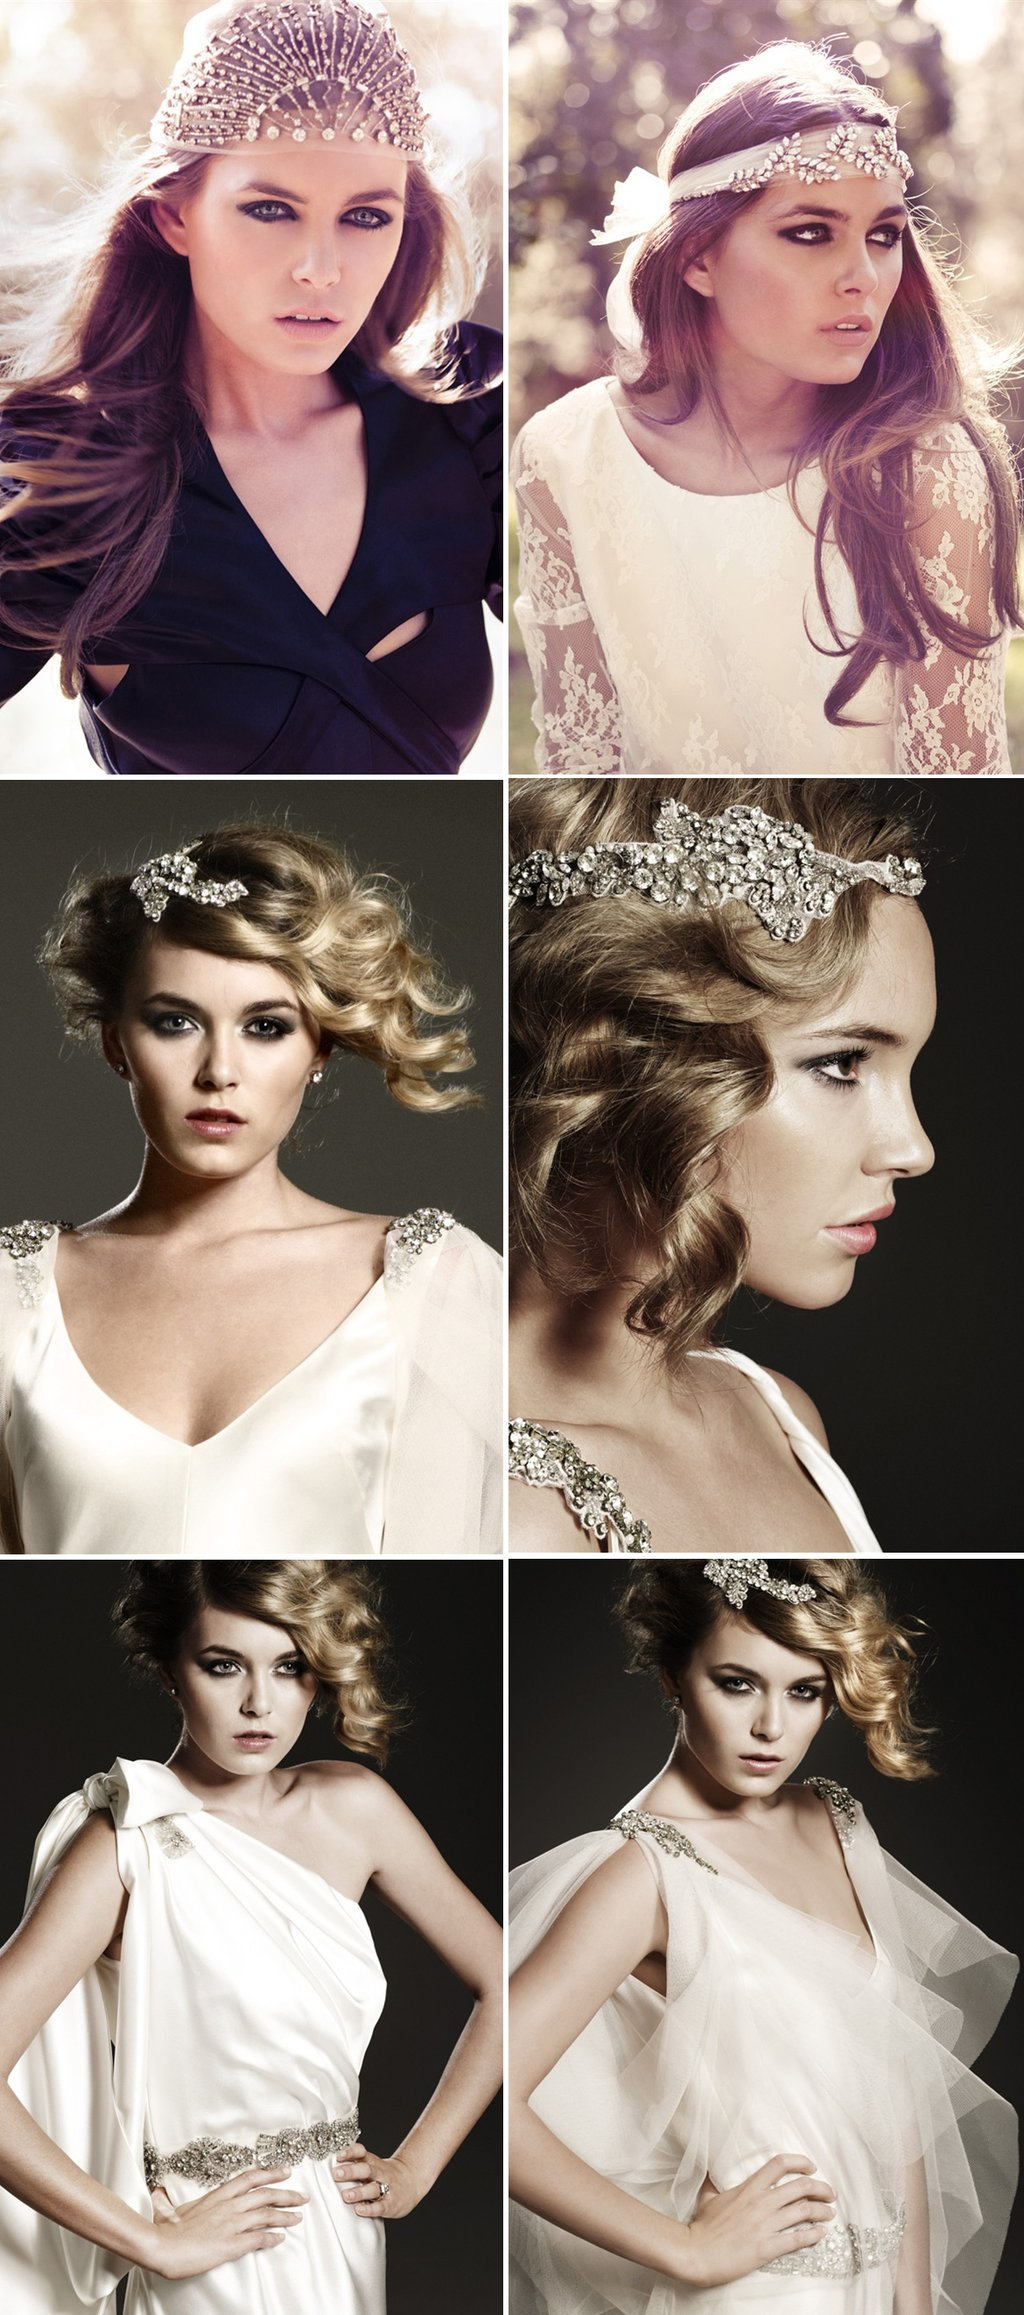 bridal hair accessories wedding caps veils tiaras 2012